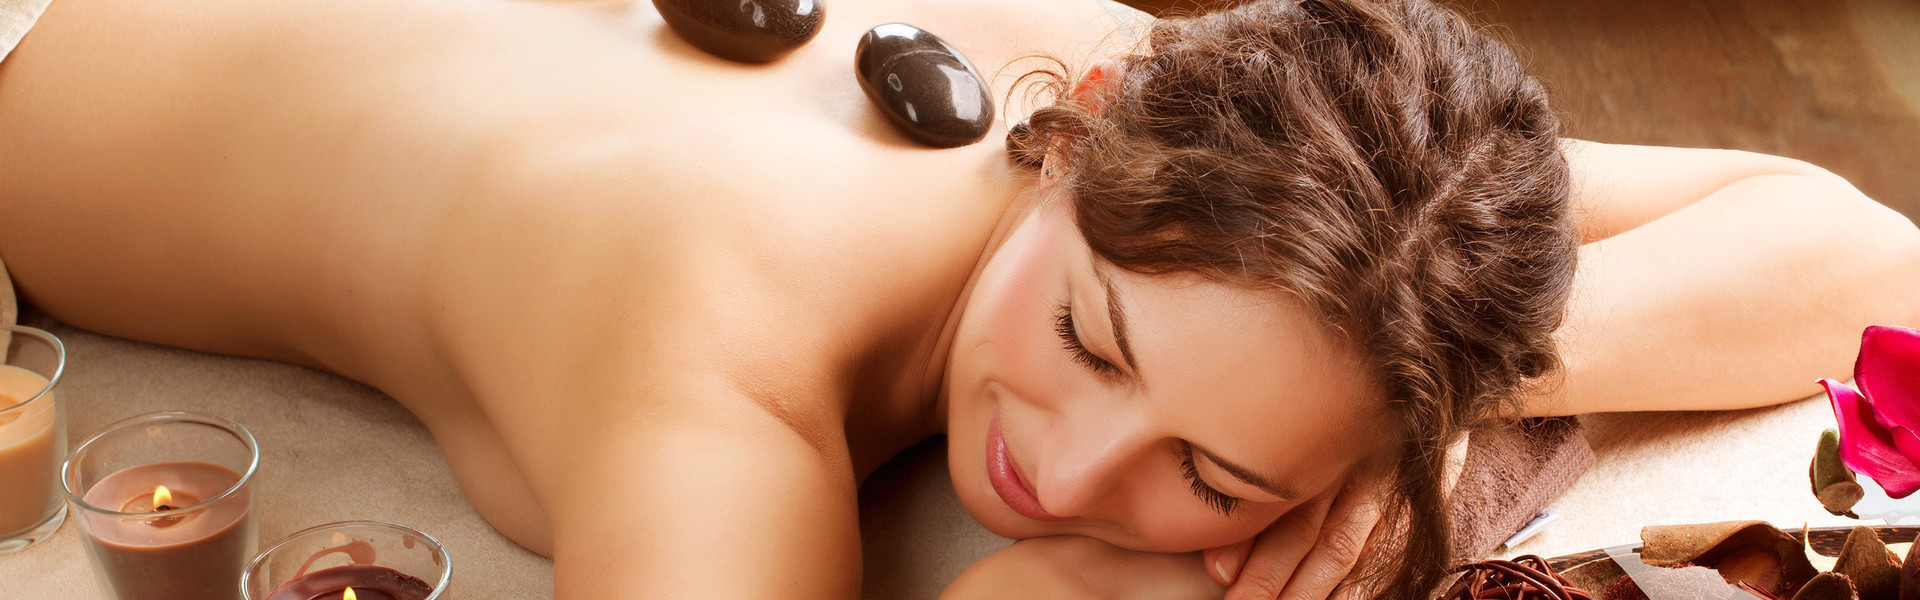 Spa Resorts in Tennessee | Stone Massage